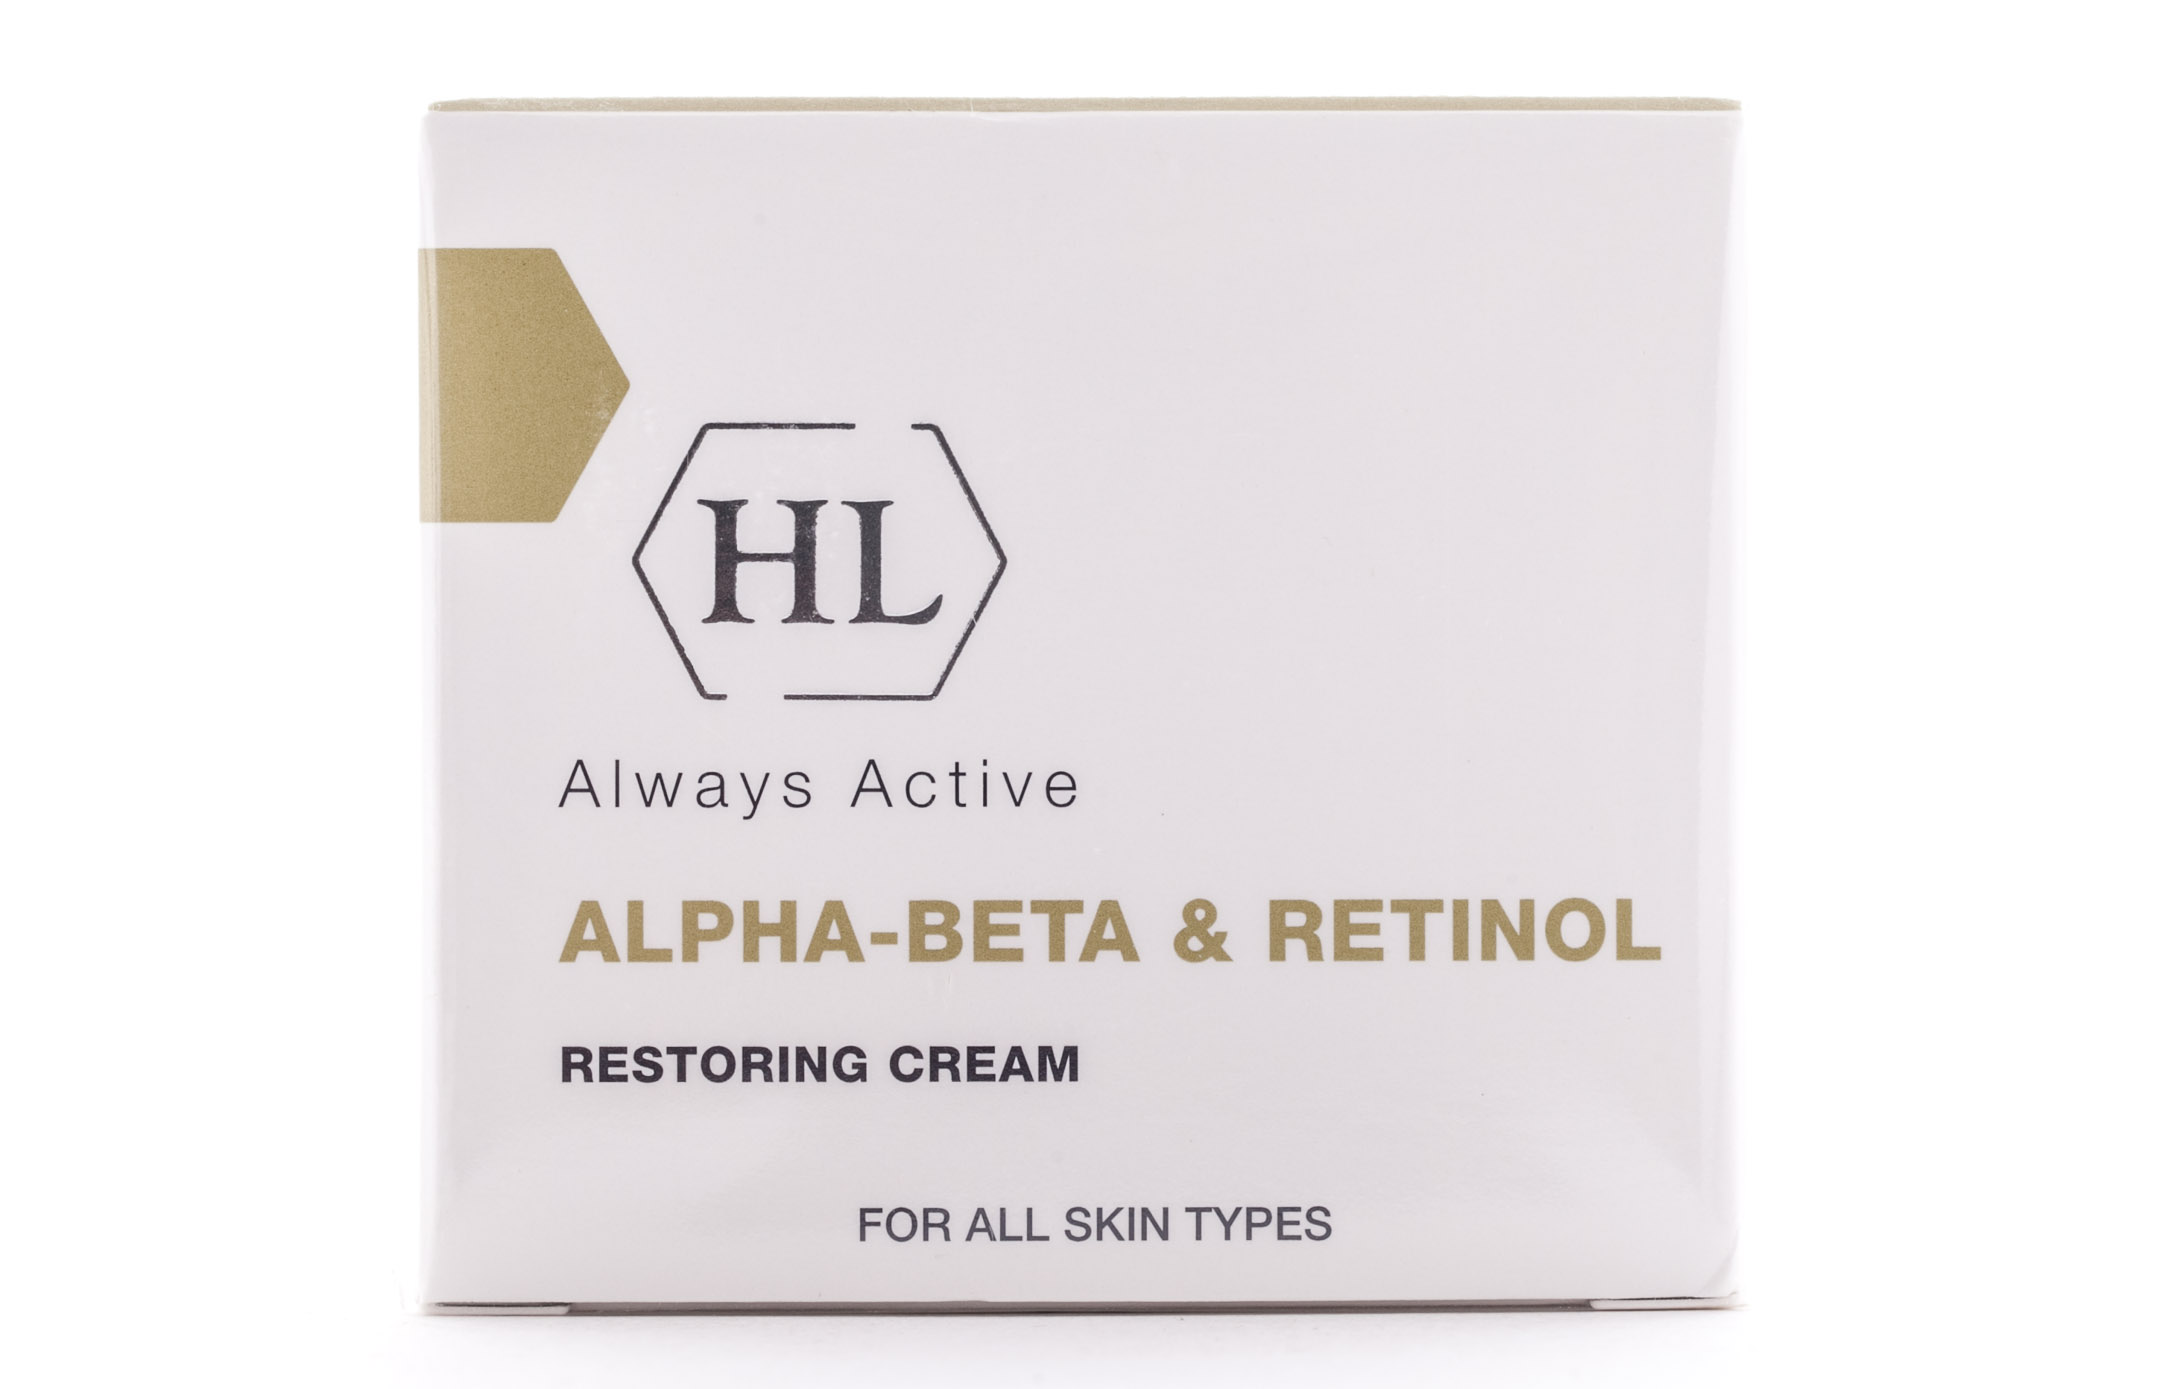 Холи Ленд Восстанавливающий крем Restoring Cream 50 мл (Holyland Laboratories, Alpha-Beta & Retinol) фото 3